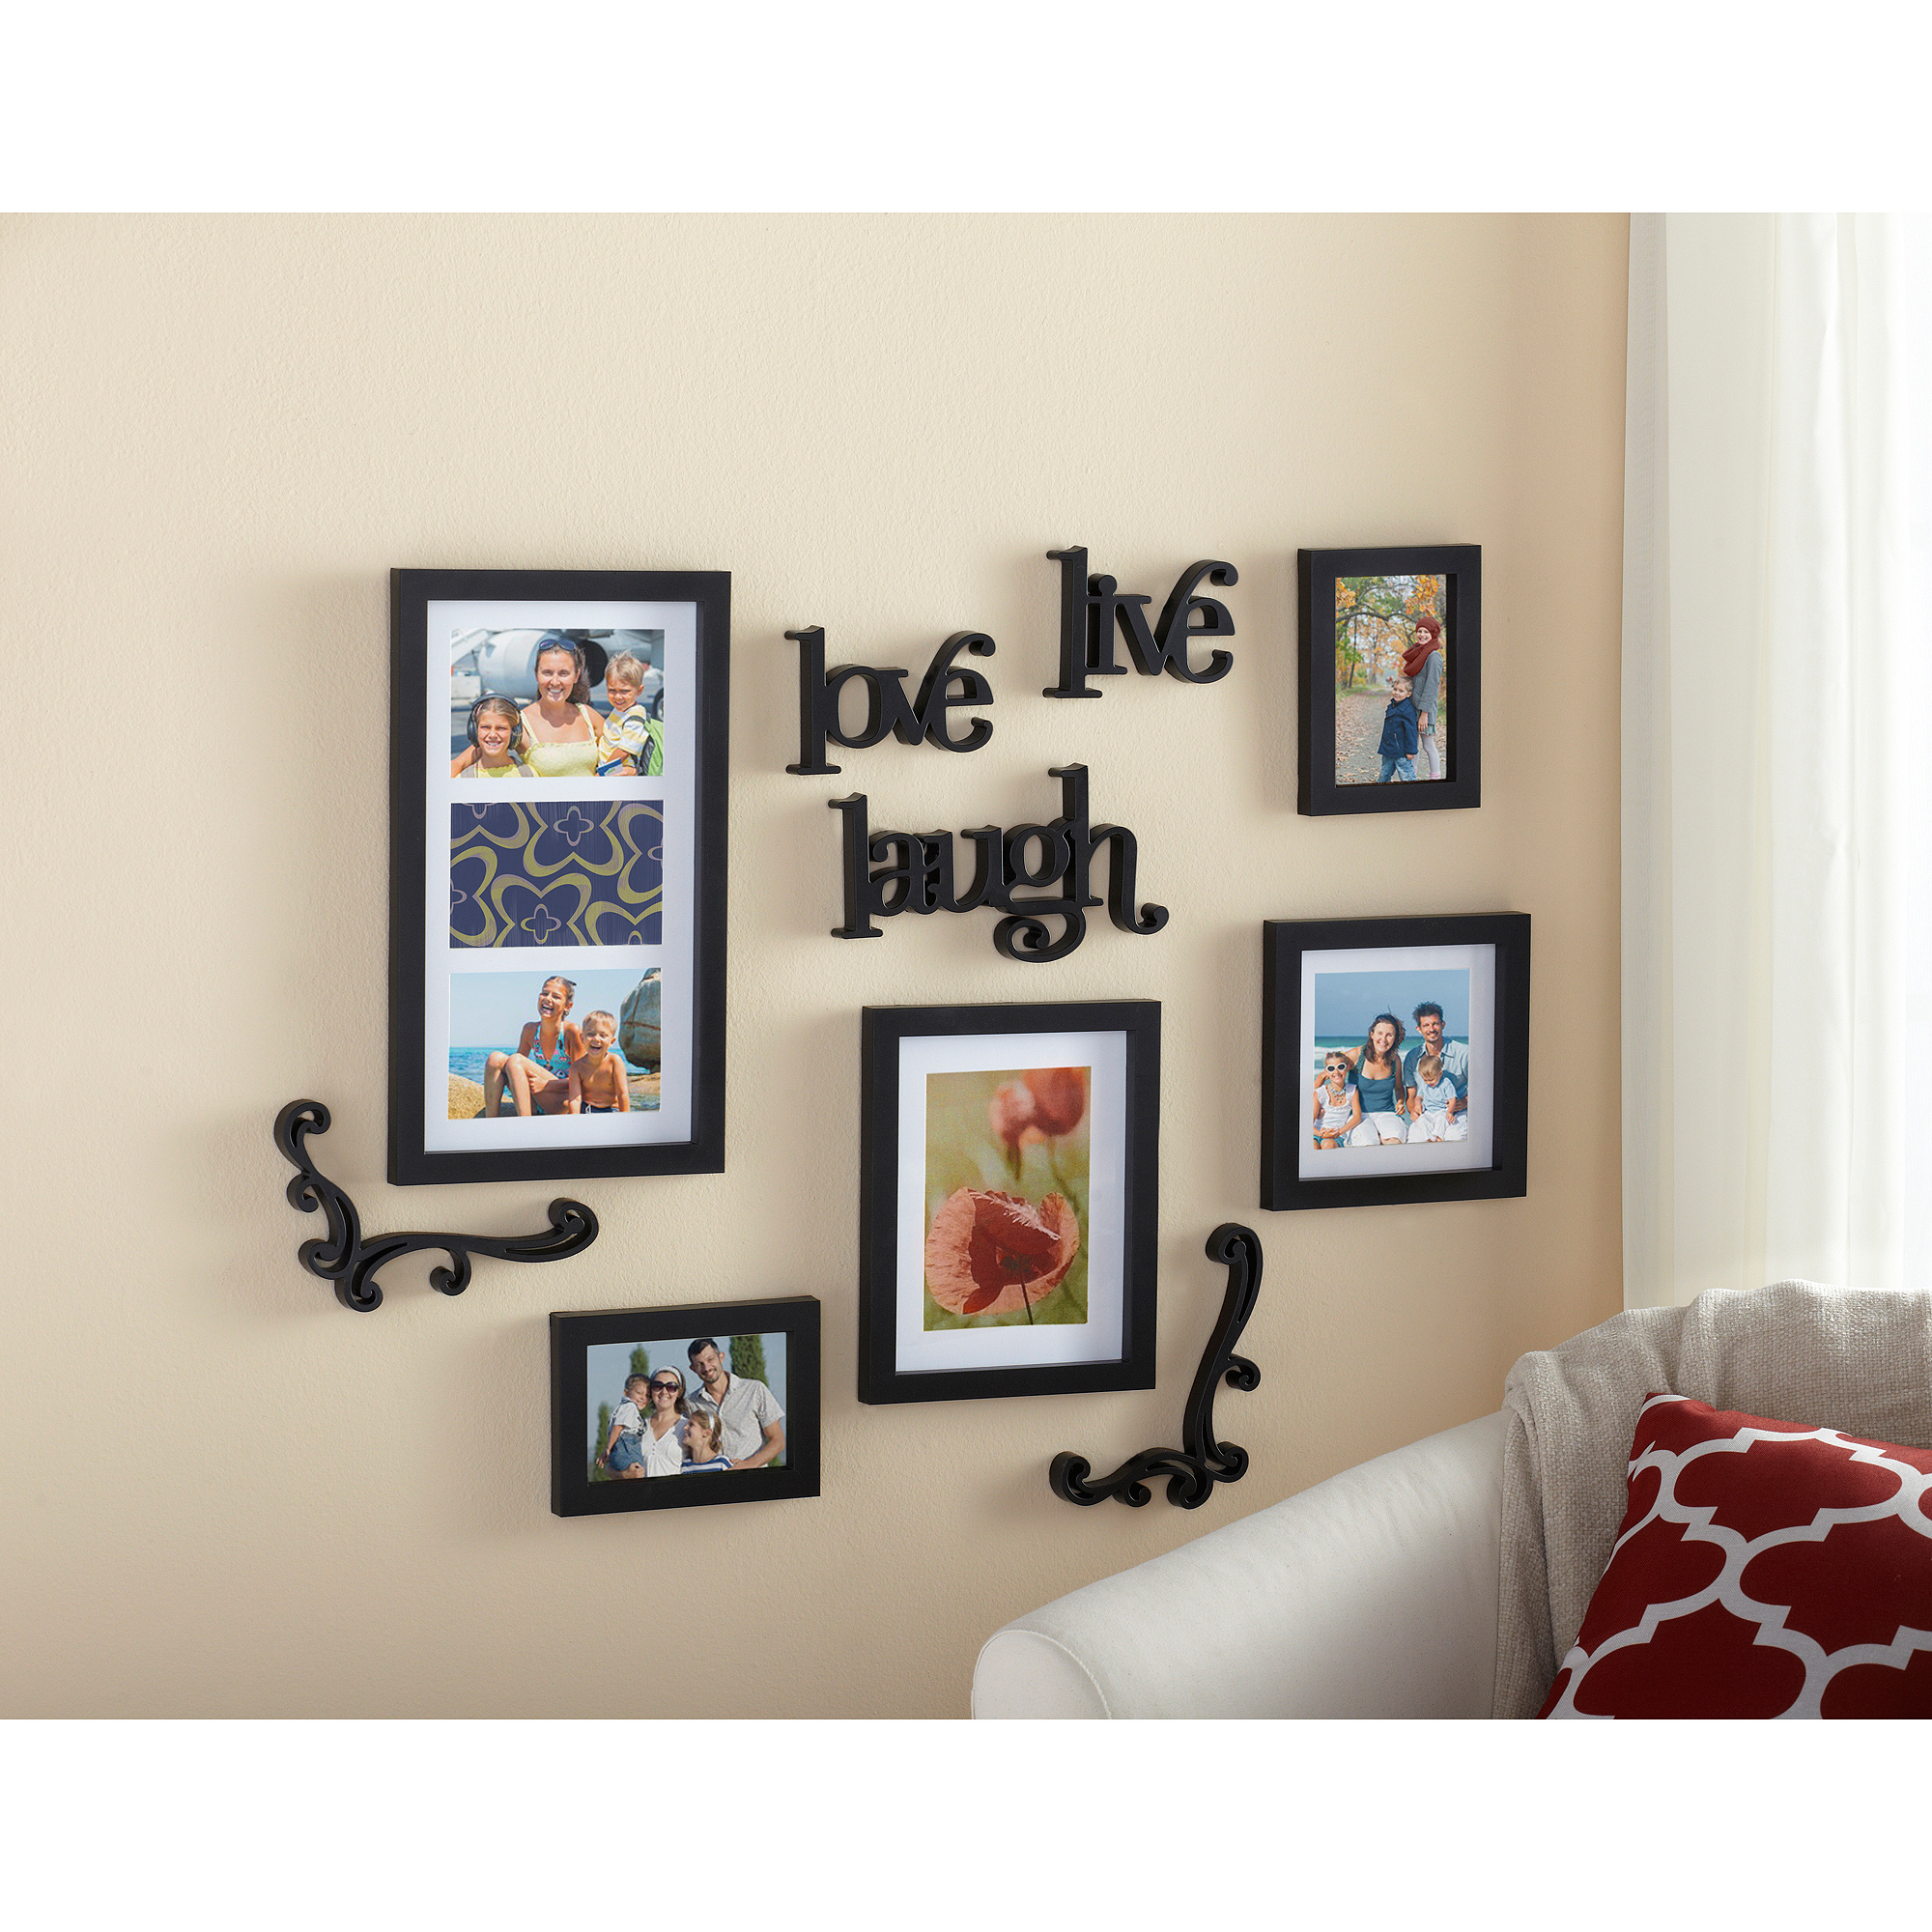 Live Love Laugh 3 Piece Black Wall Decor Sets Within Most Current 4x6 White Wood Picture Frame – Gallery Collection – Walmart (Gallery 10 of 20)